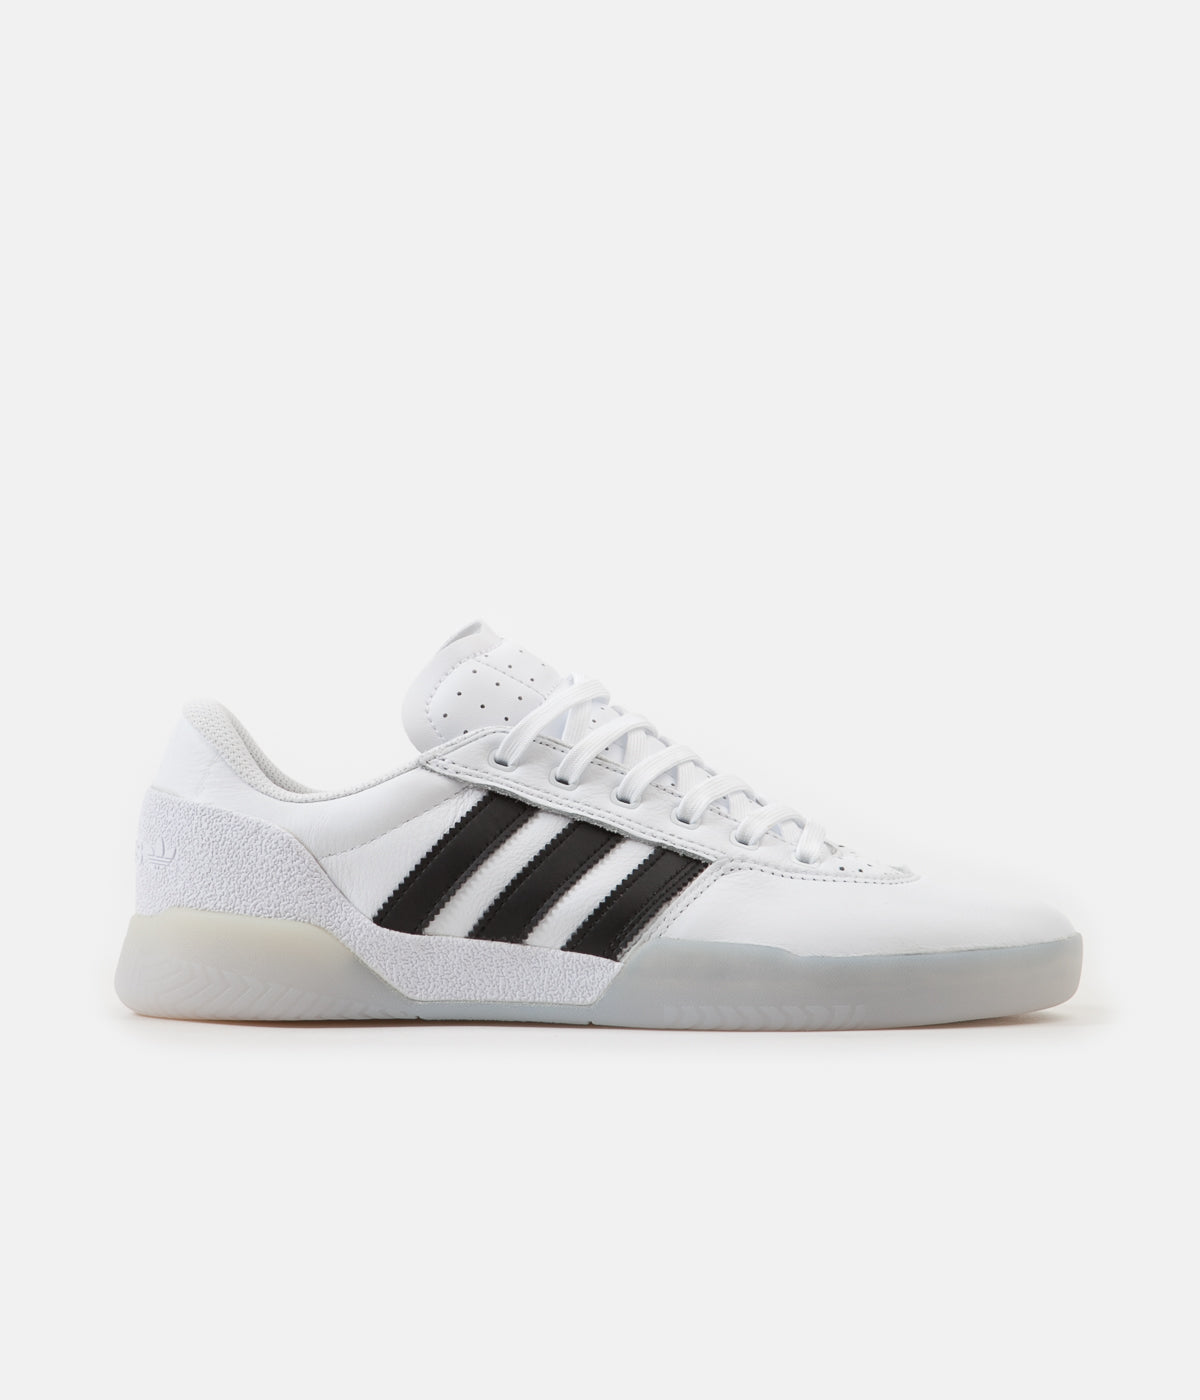 ebf4616a286 Adidas City Cup Shoes - White   Core Black   Light Solid Grey